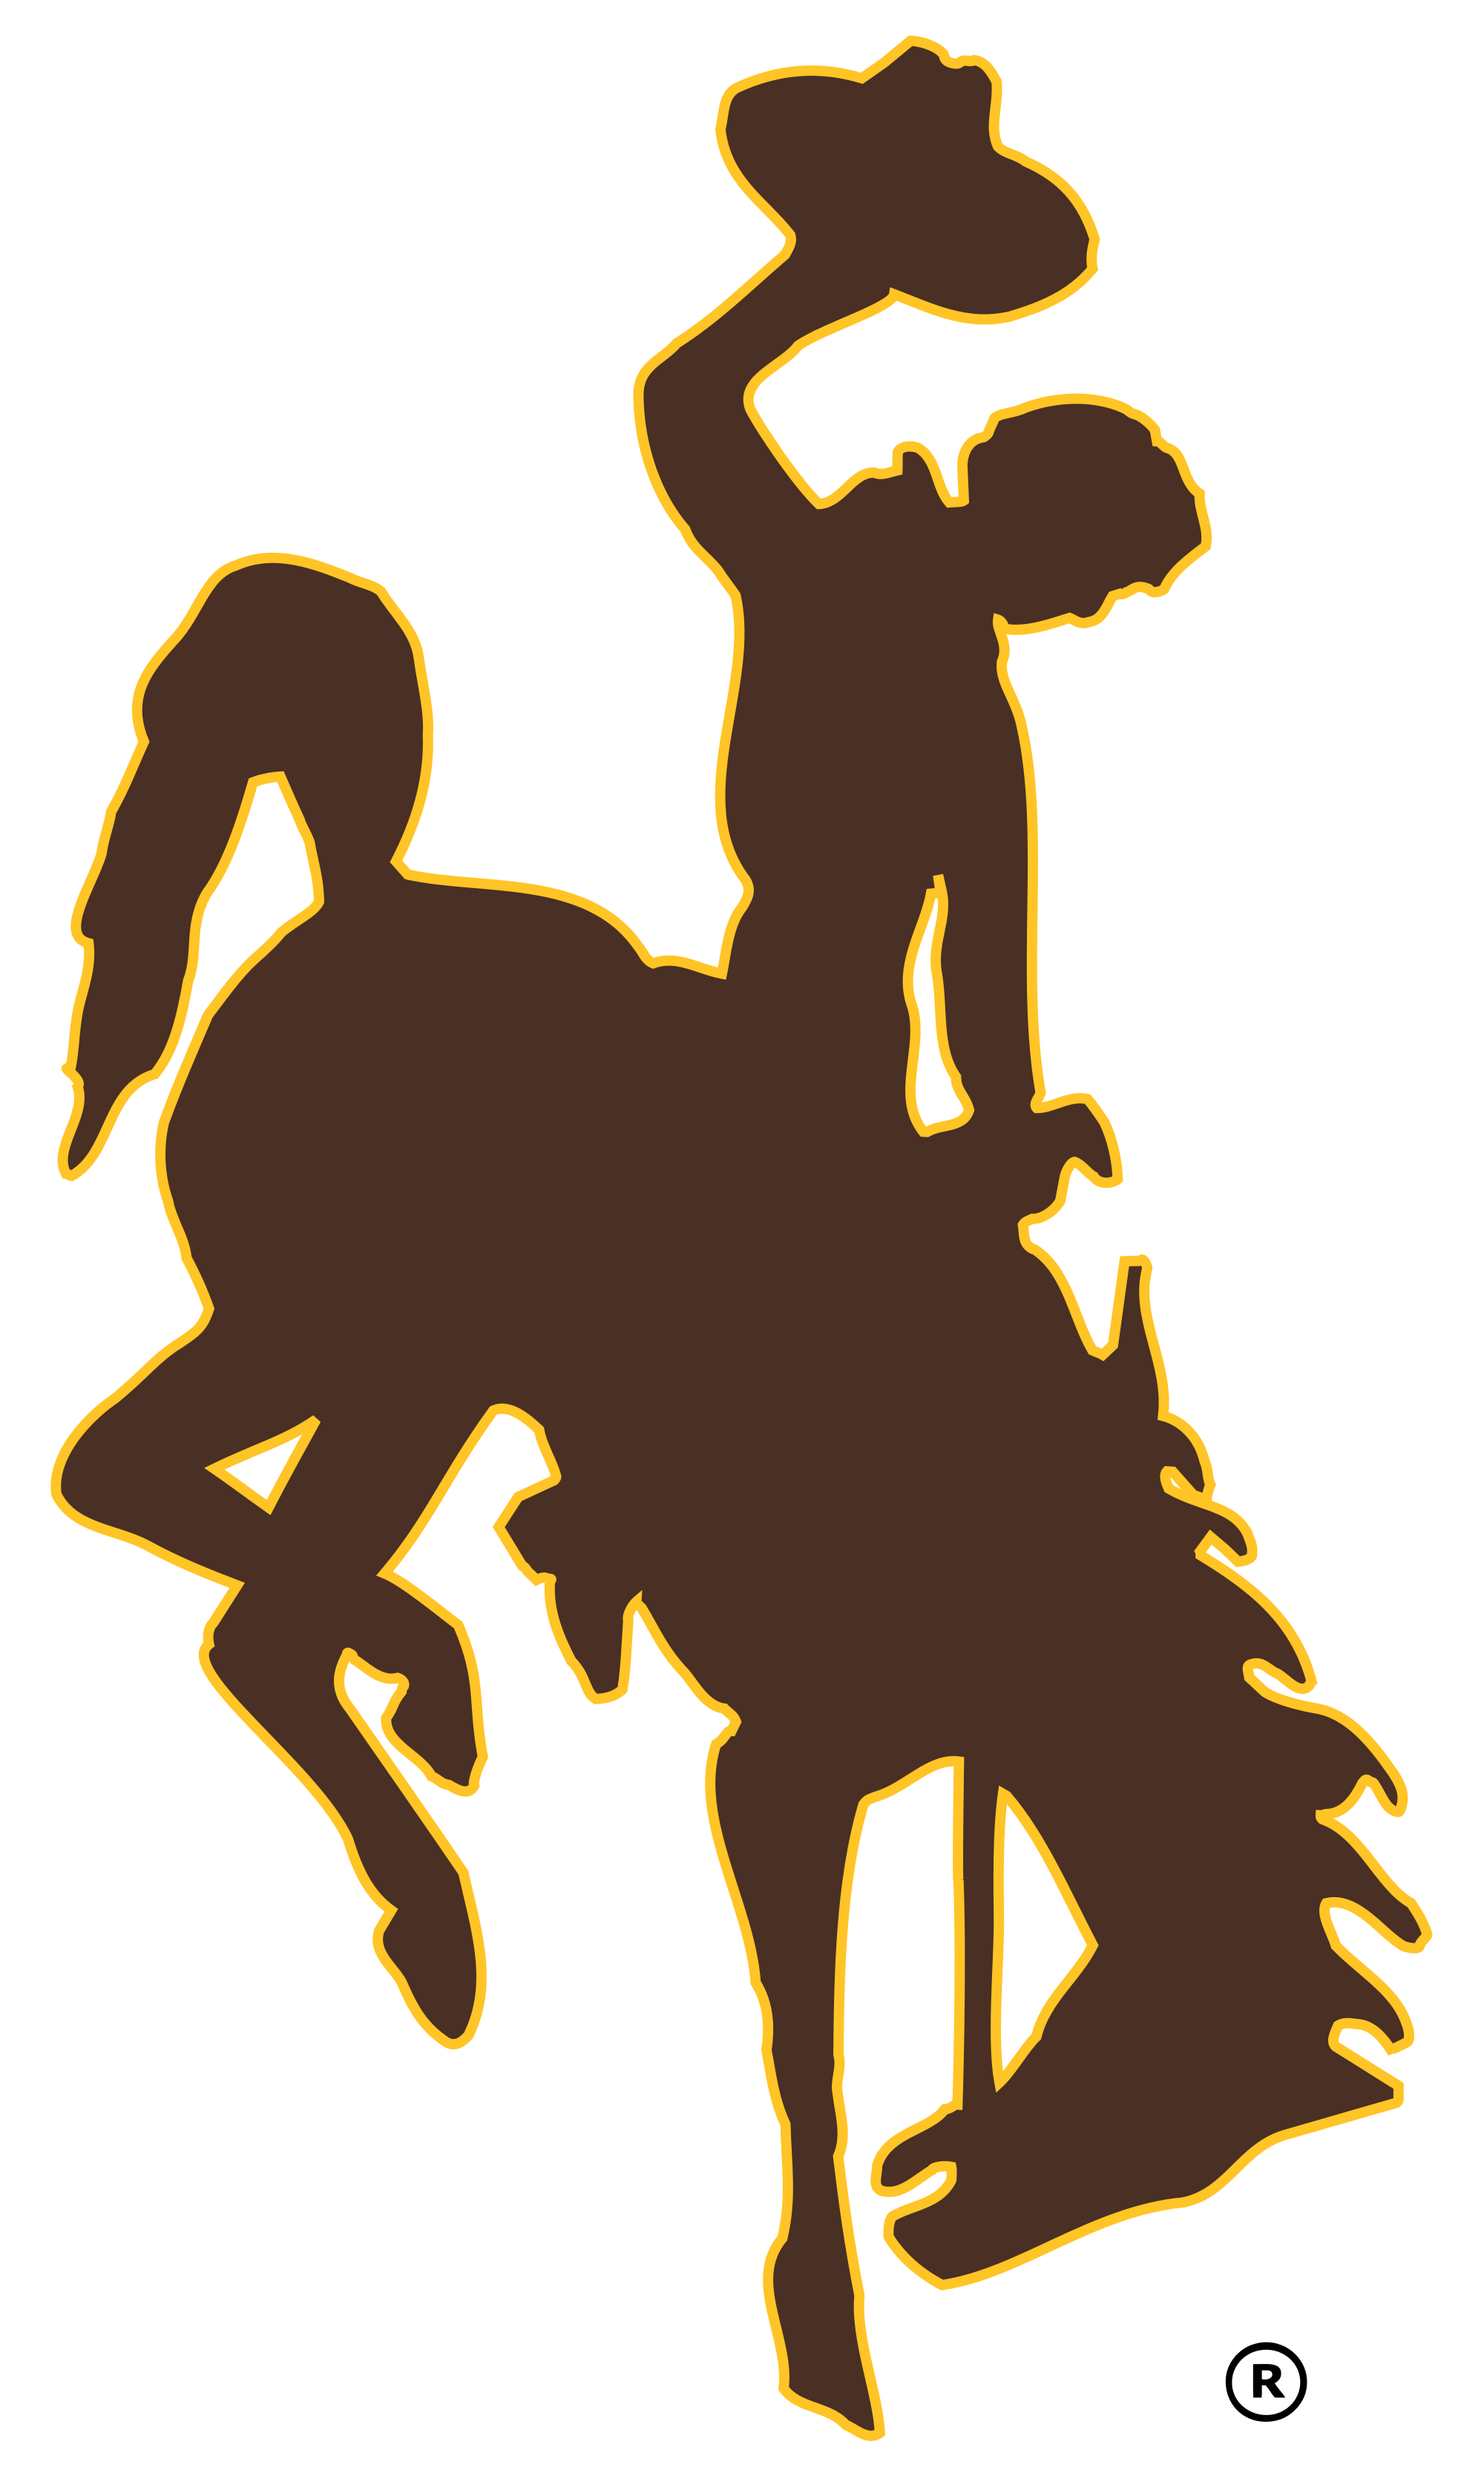 Cowboy football clipart vector transparent download Wyoming Cowboys football - Wikipedia, the free encyclopedia | Cubs ... vector transparent download